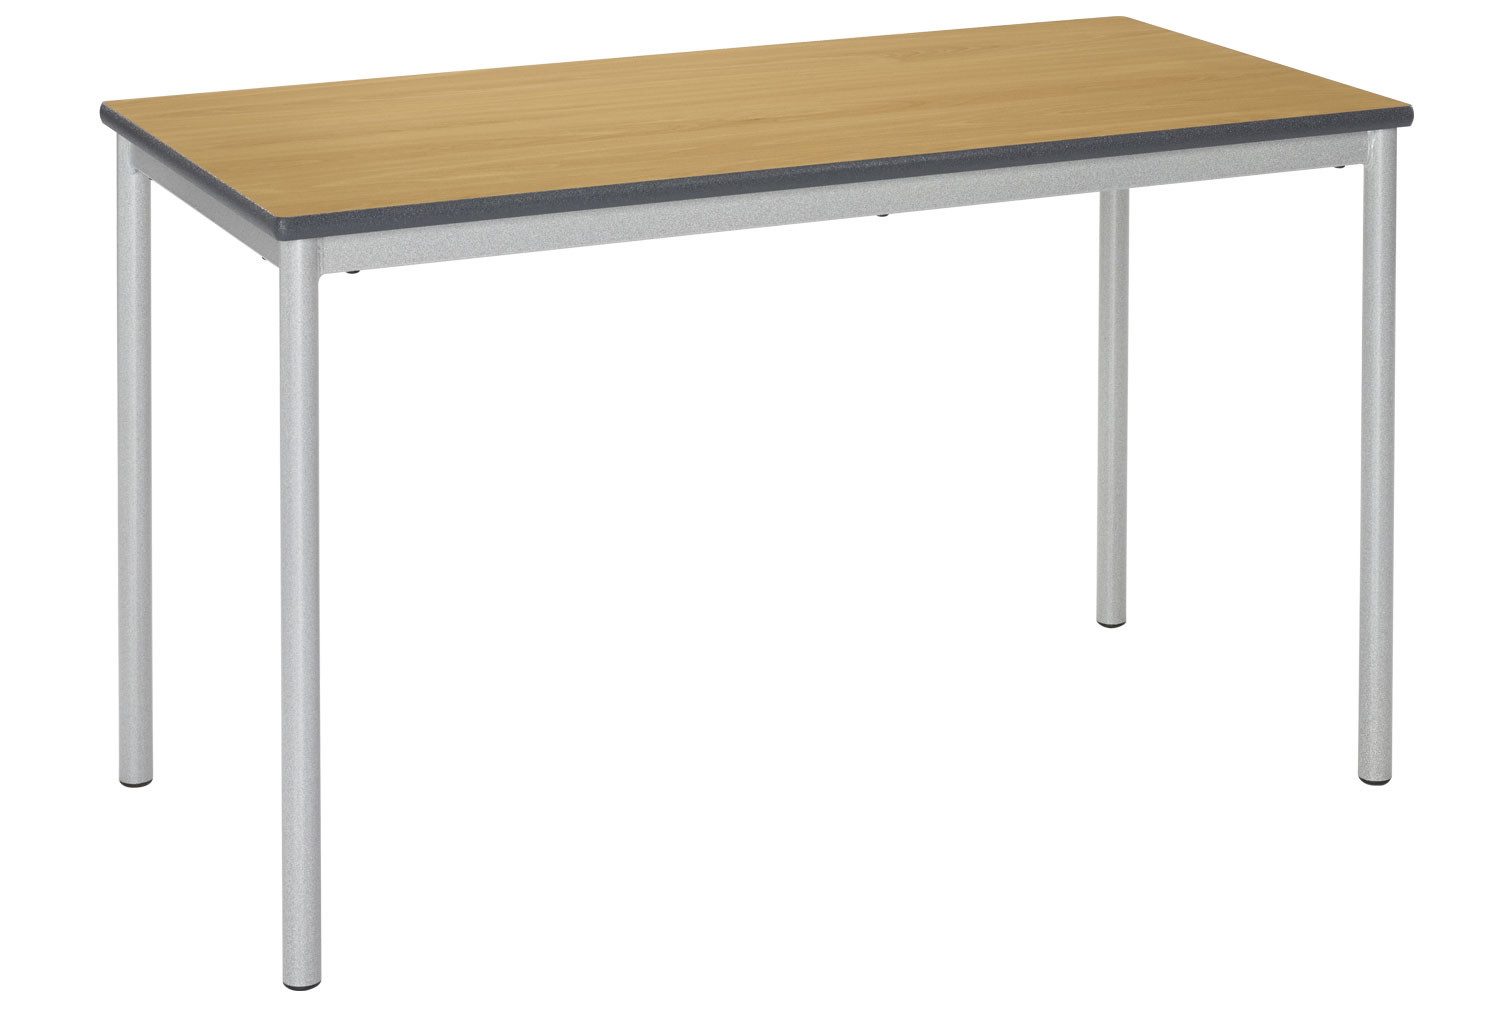 RT32 Rectangular Classroom Tables 14+ Years